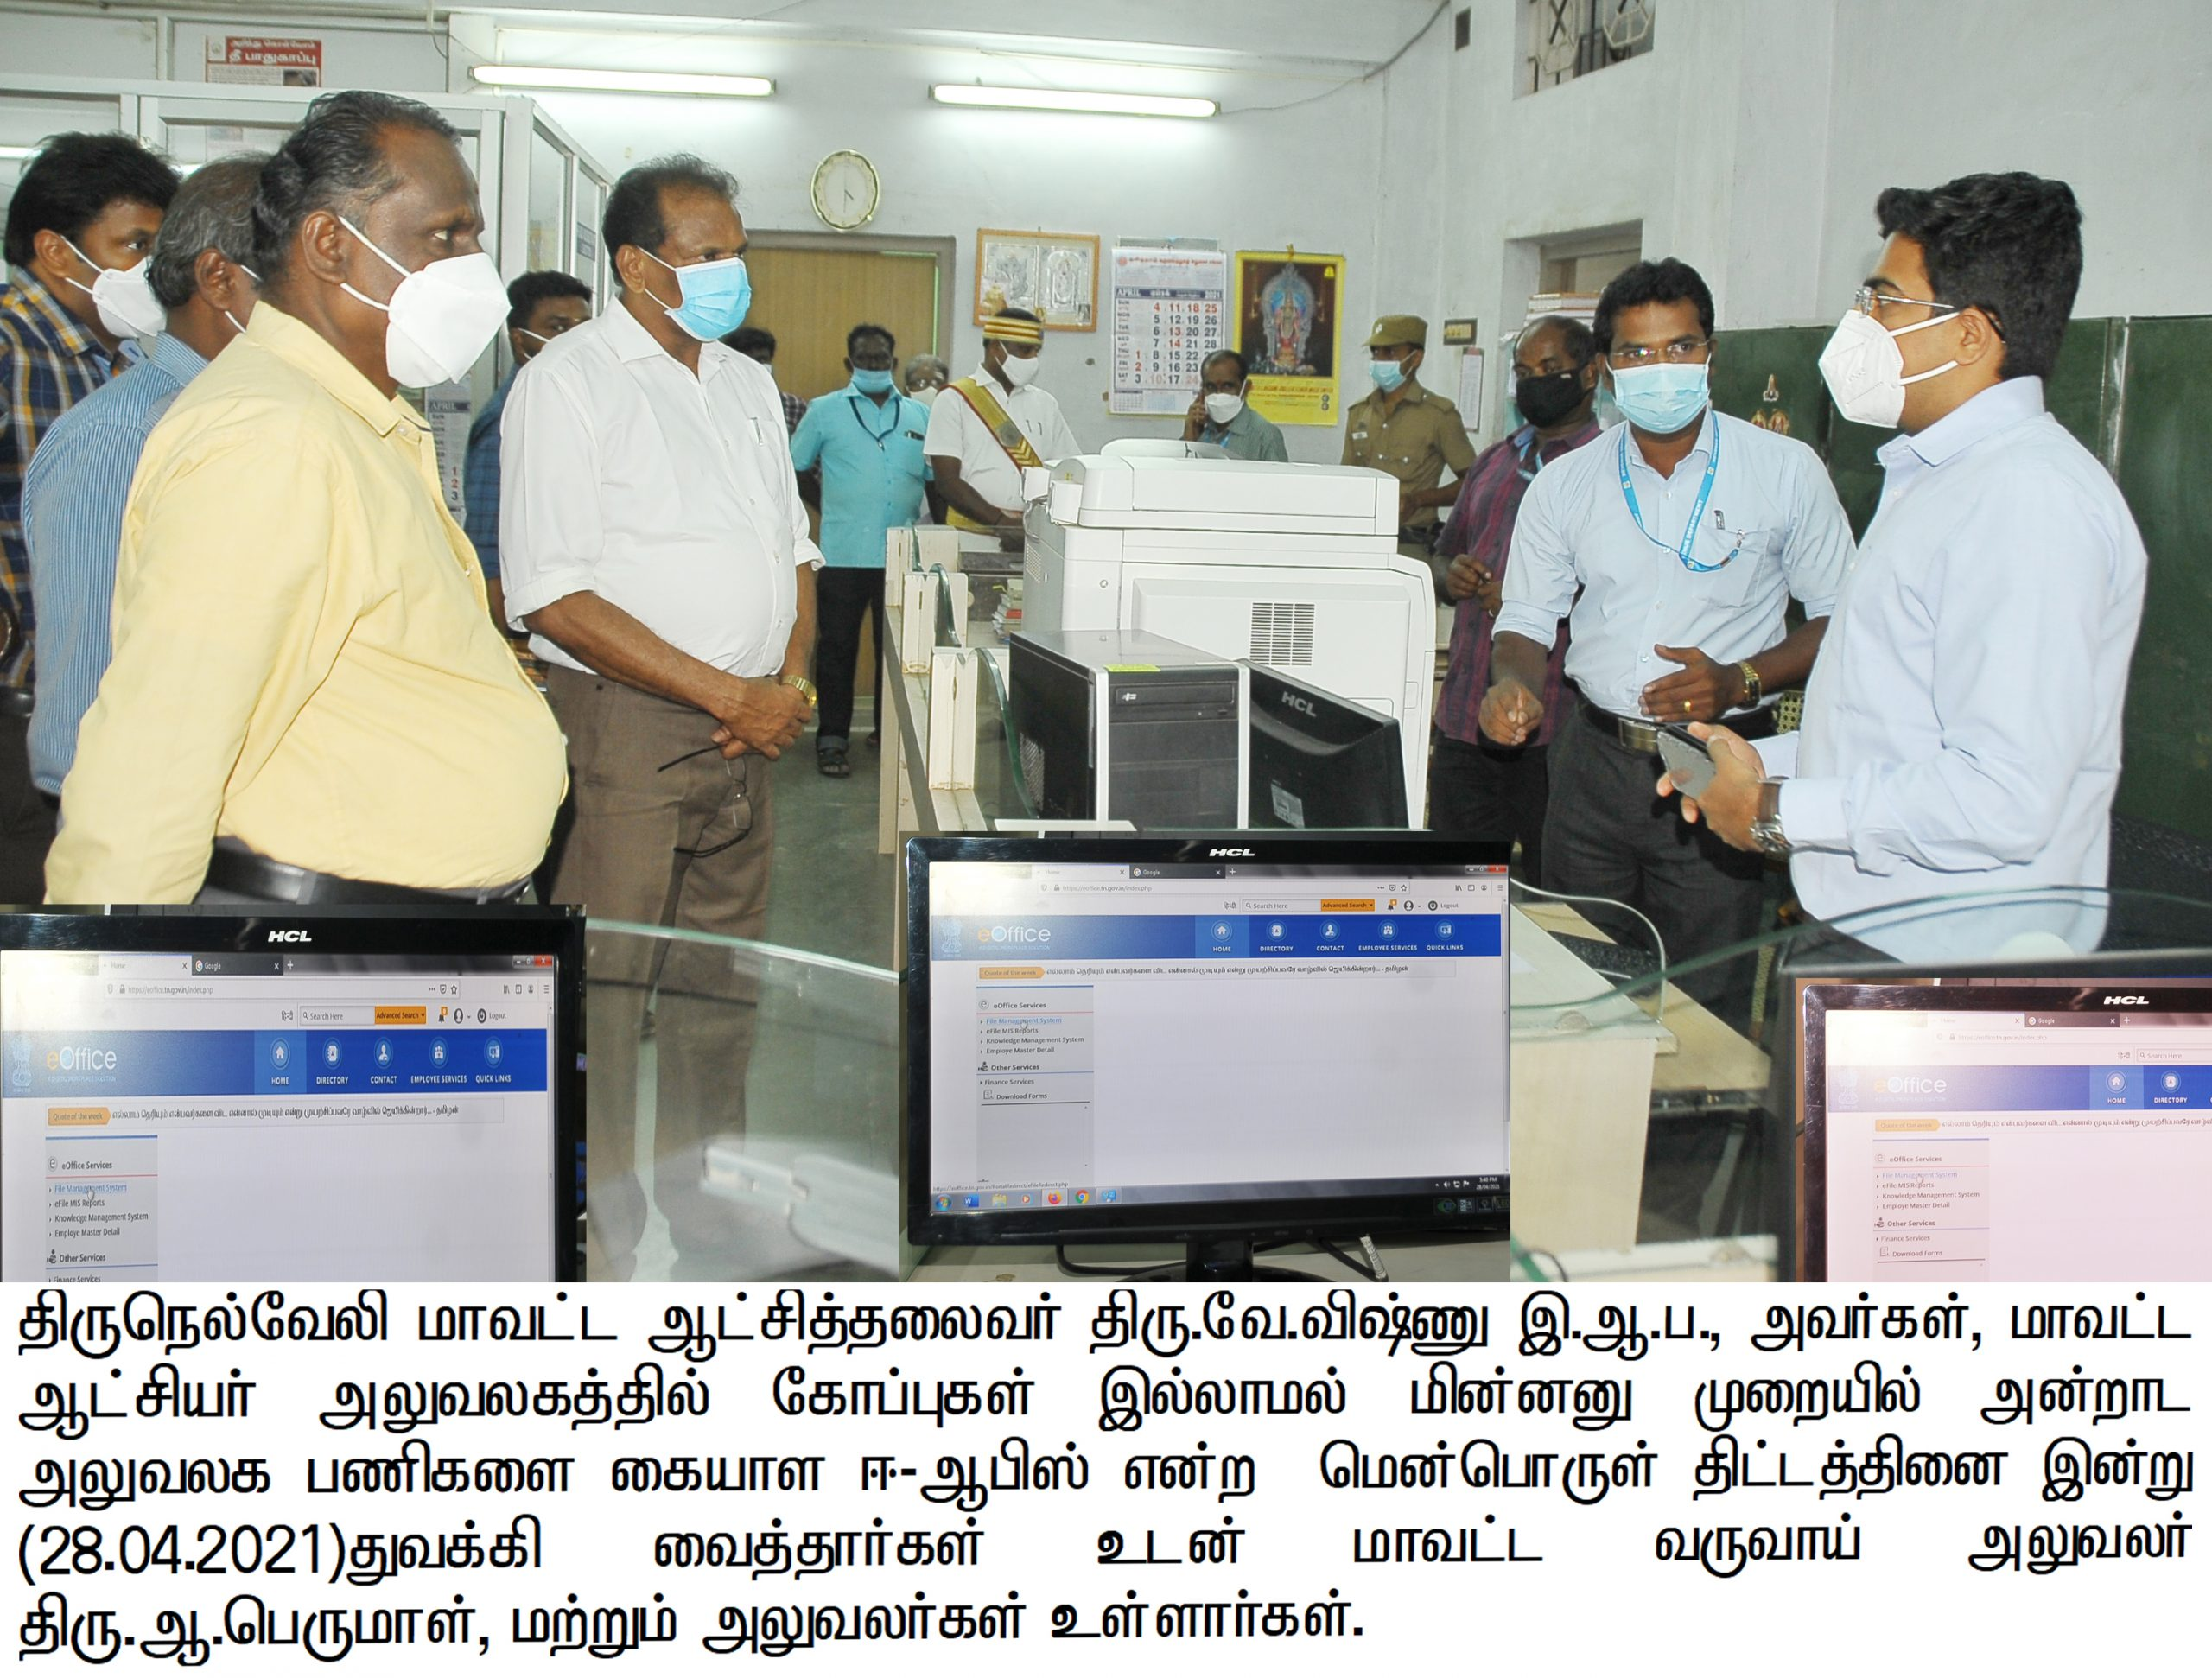 District Collector launched e-Office software to handle daily office tasks.